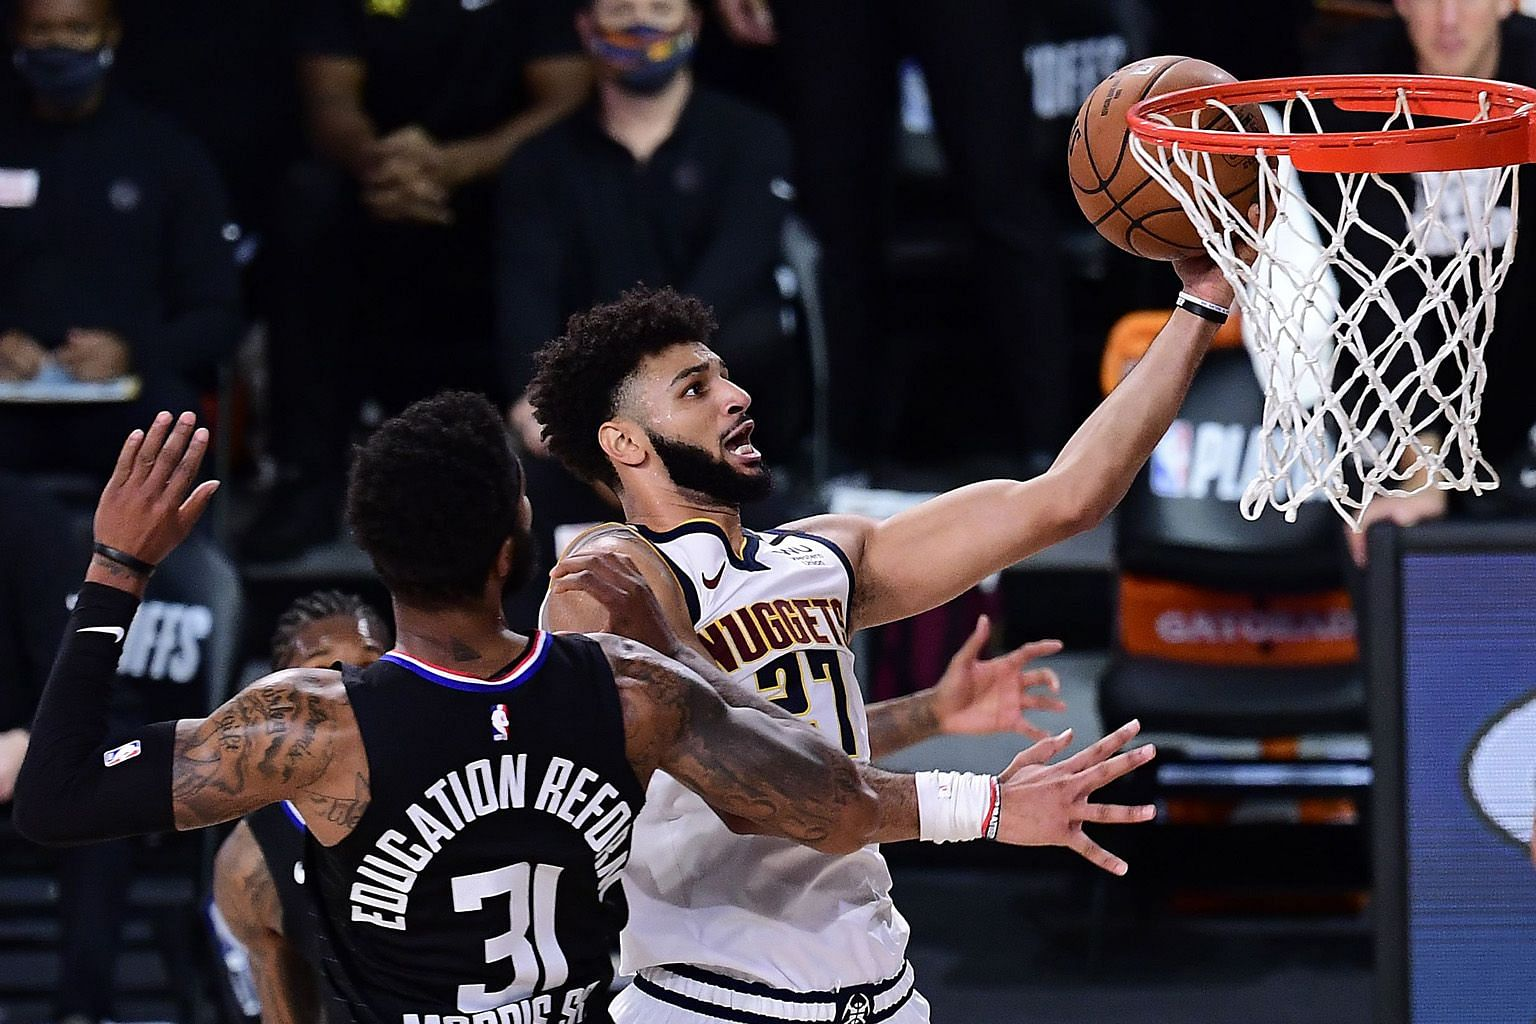 Denver Nuggets guard Jamal Murray scoring two of his game-high 40 points to set up a Western Conference finals match-up with the Los Angeles Lakers. PHOTO: AGENCE FRANCE-PRESSE